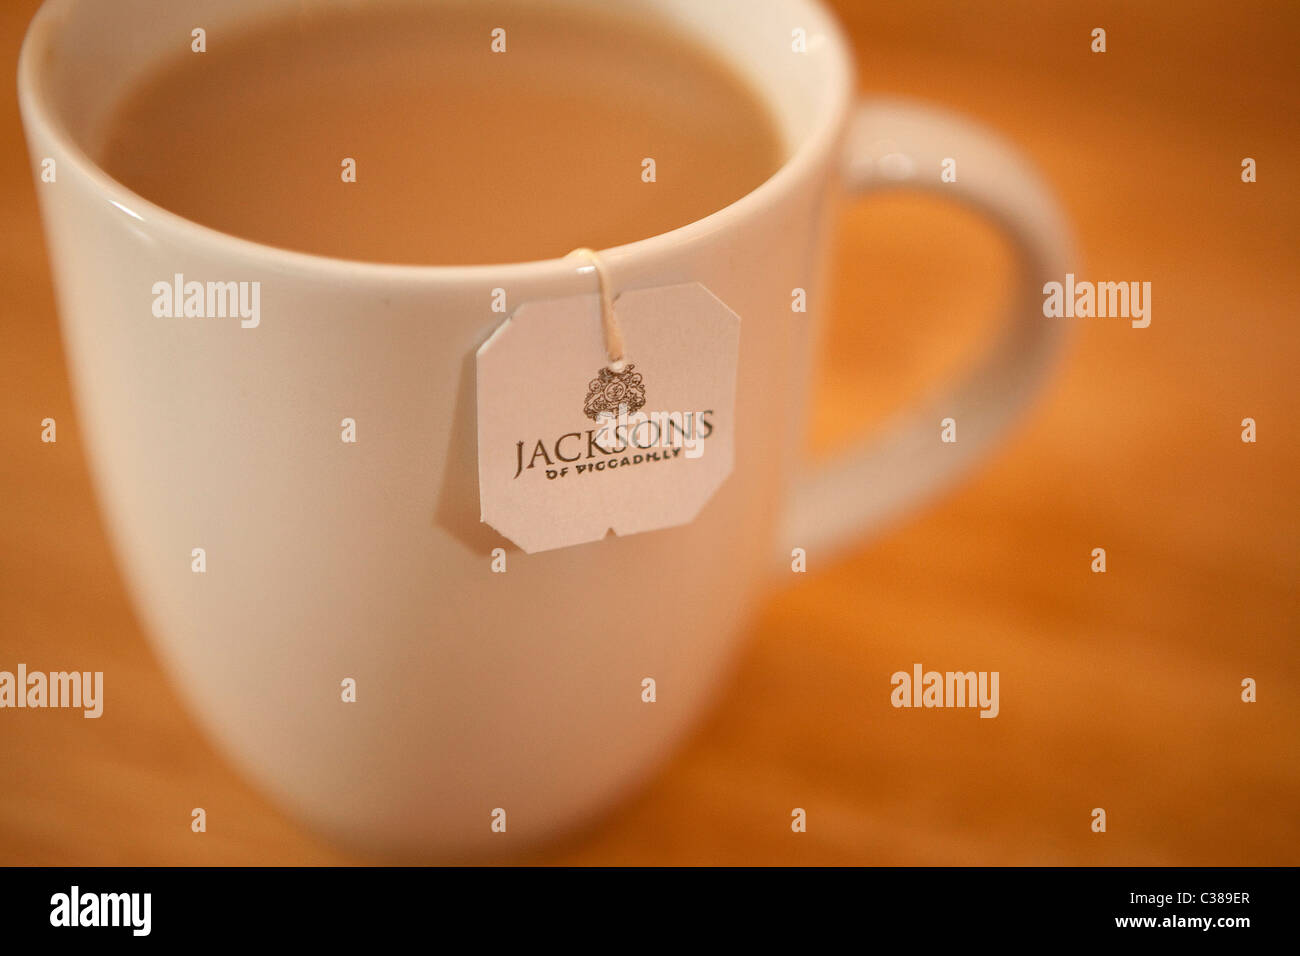 Illustrative image of Jackson's of Piccadilly Tea, an Associated British Foods brand. - Stock Image